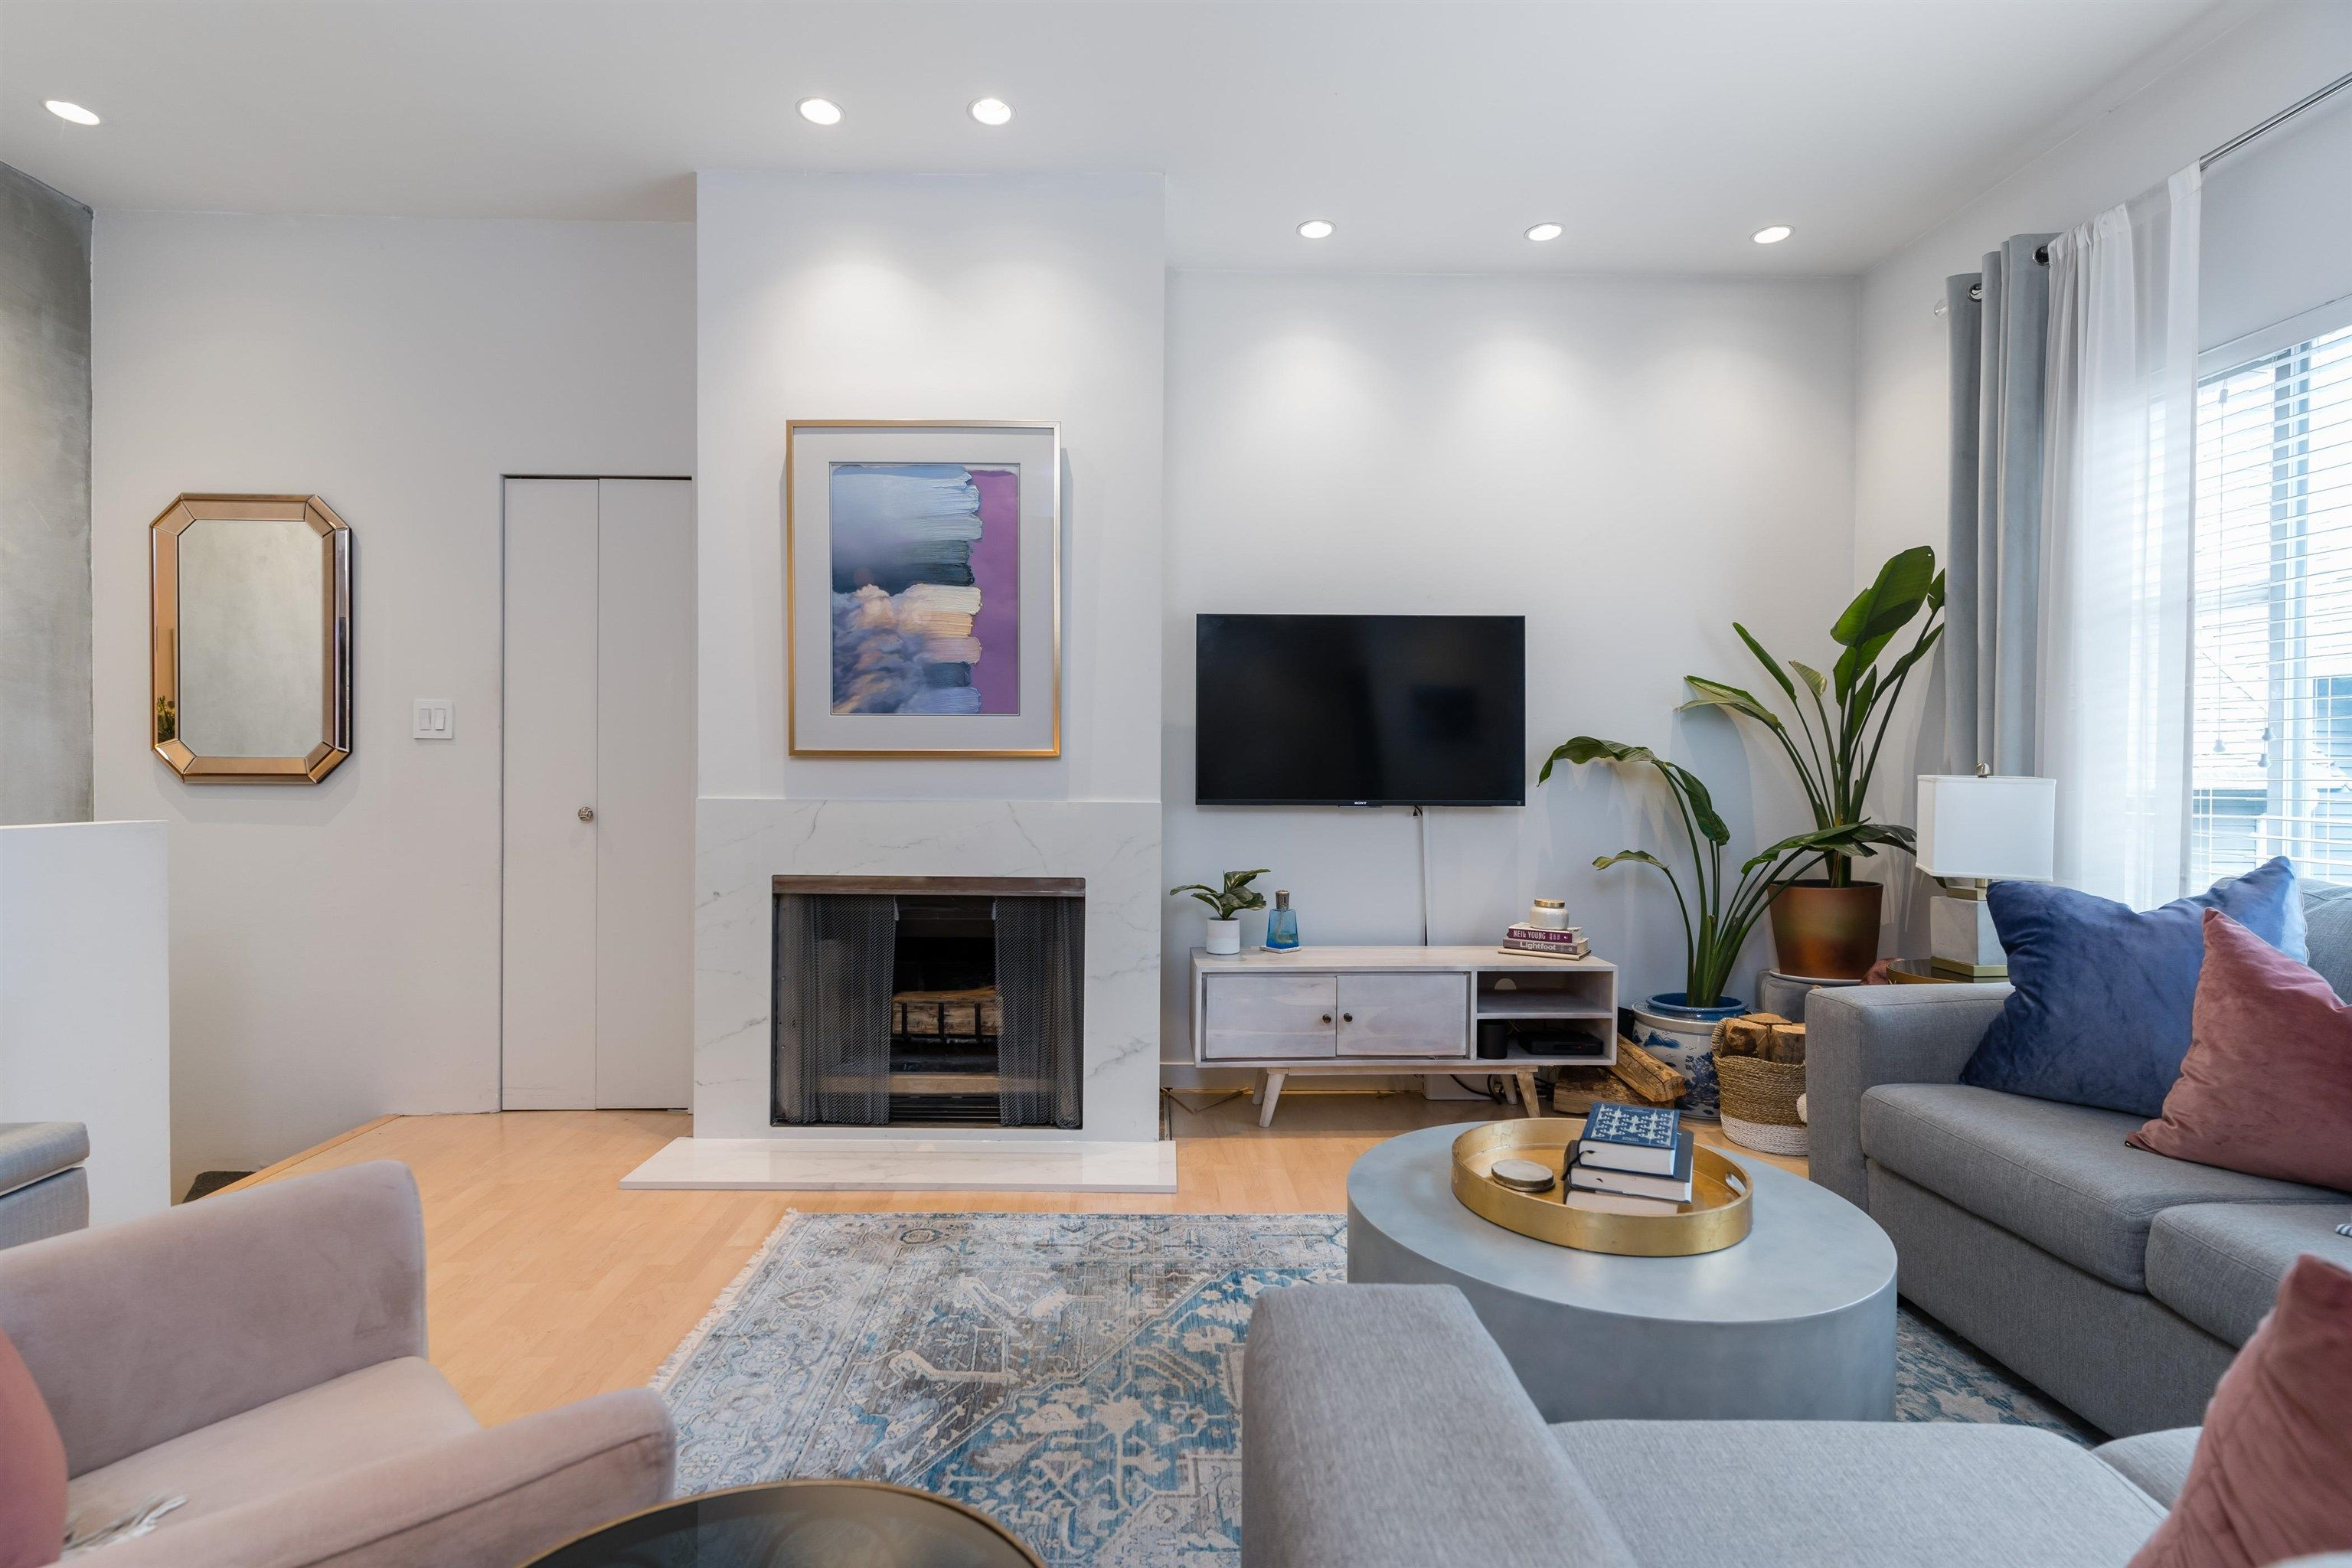 """Main Photo: 819 W 7TH Avenue in Vancouver: Fairview VW Townhouse for sale in """"Ballentyne Square"""" (Vancouver West)  : MLS®# R2620009"""